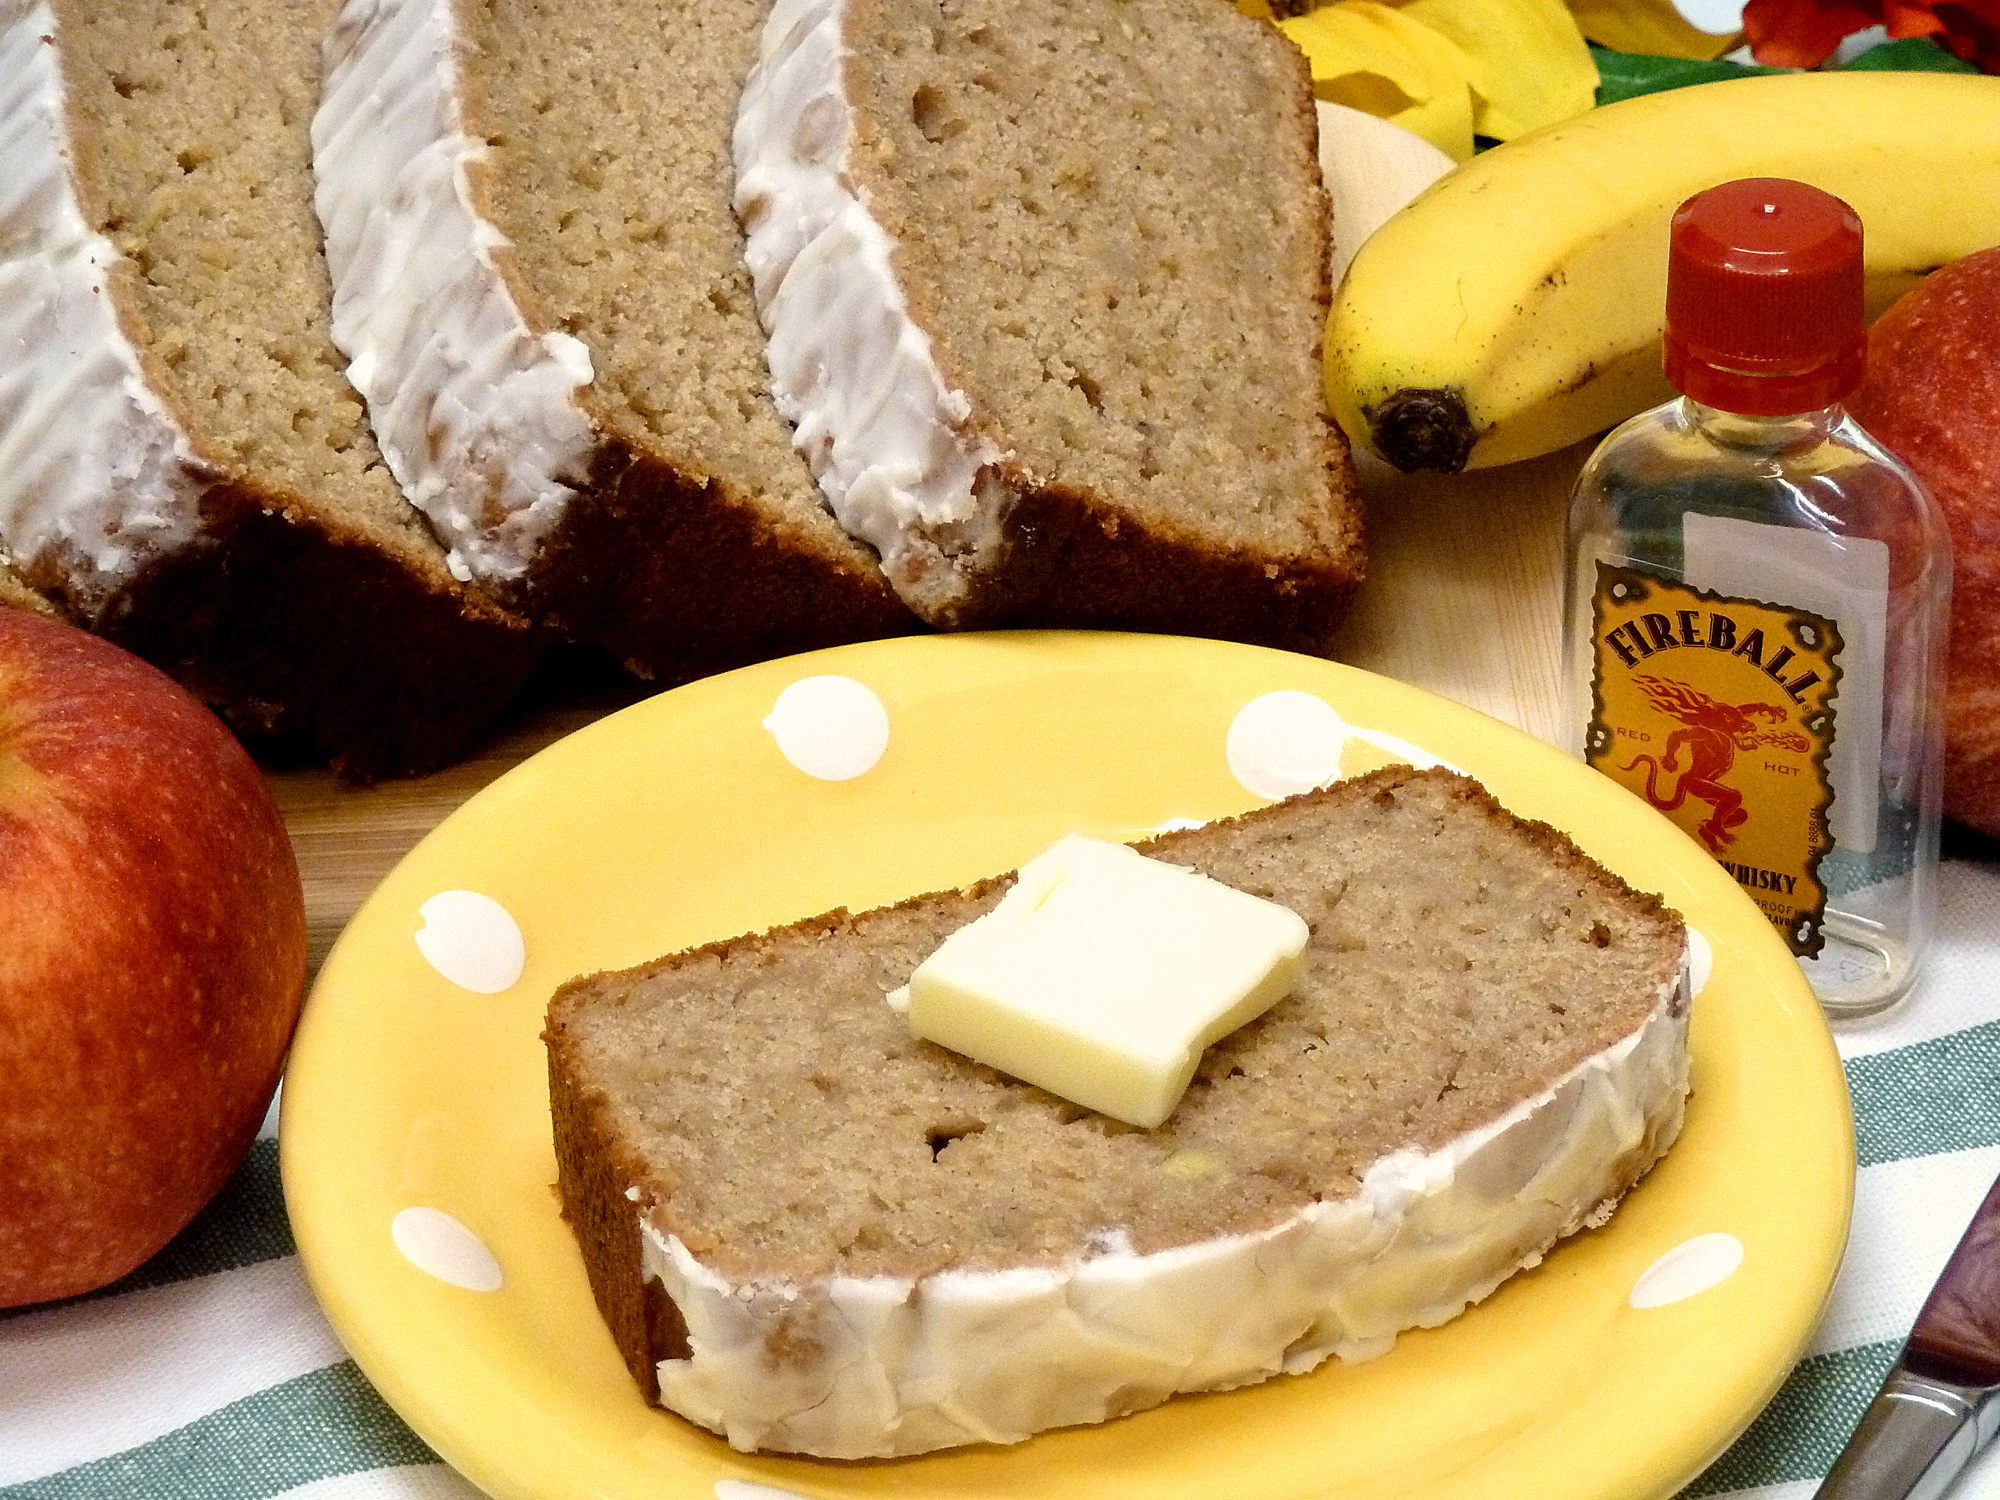 Kick your banana apple bread up a notch with Fireball whiskey!